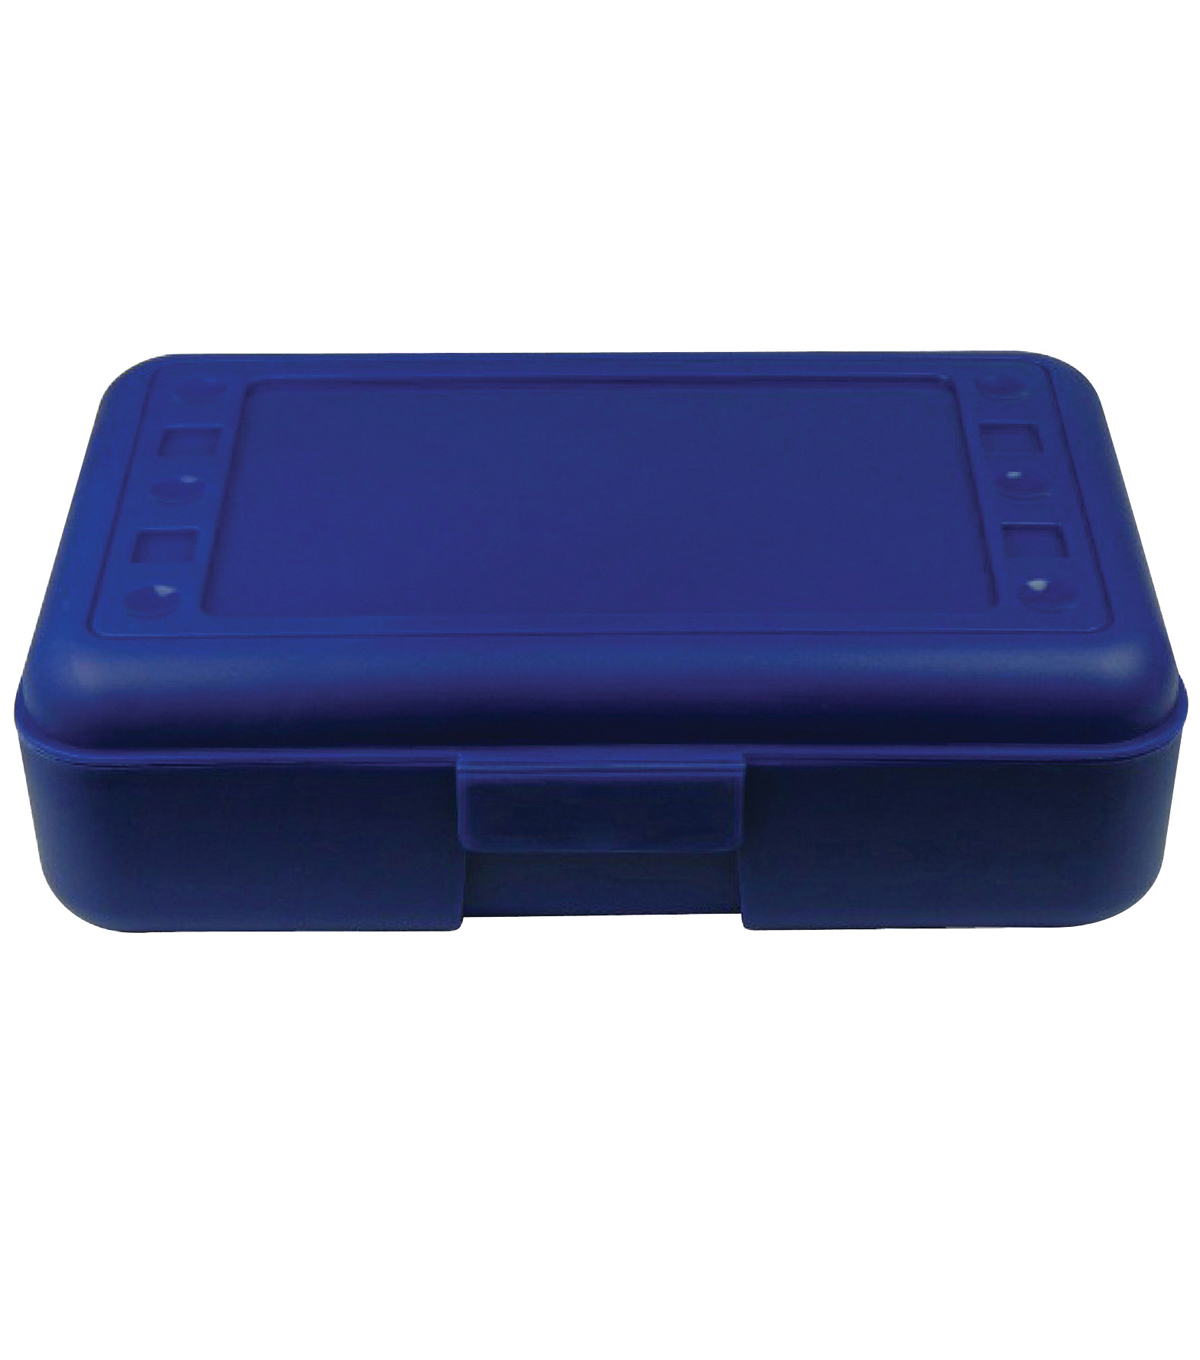 Romanoff Products Pencil Box, Pack of 12, Blue